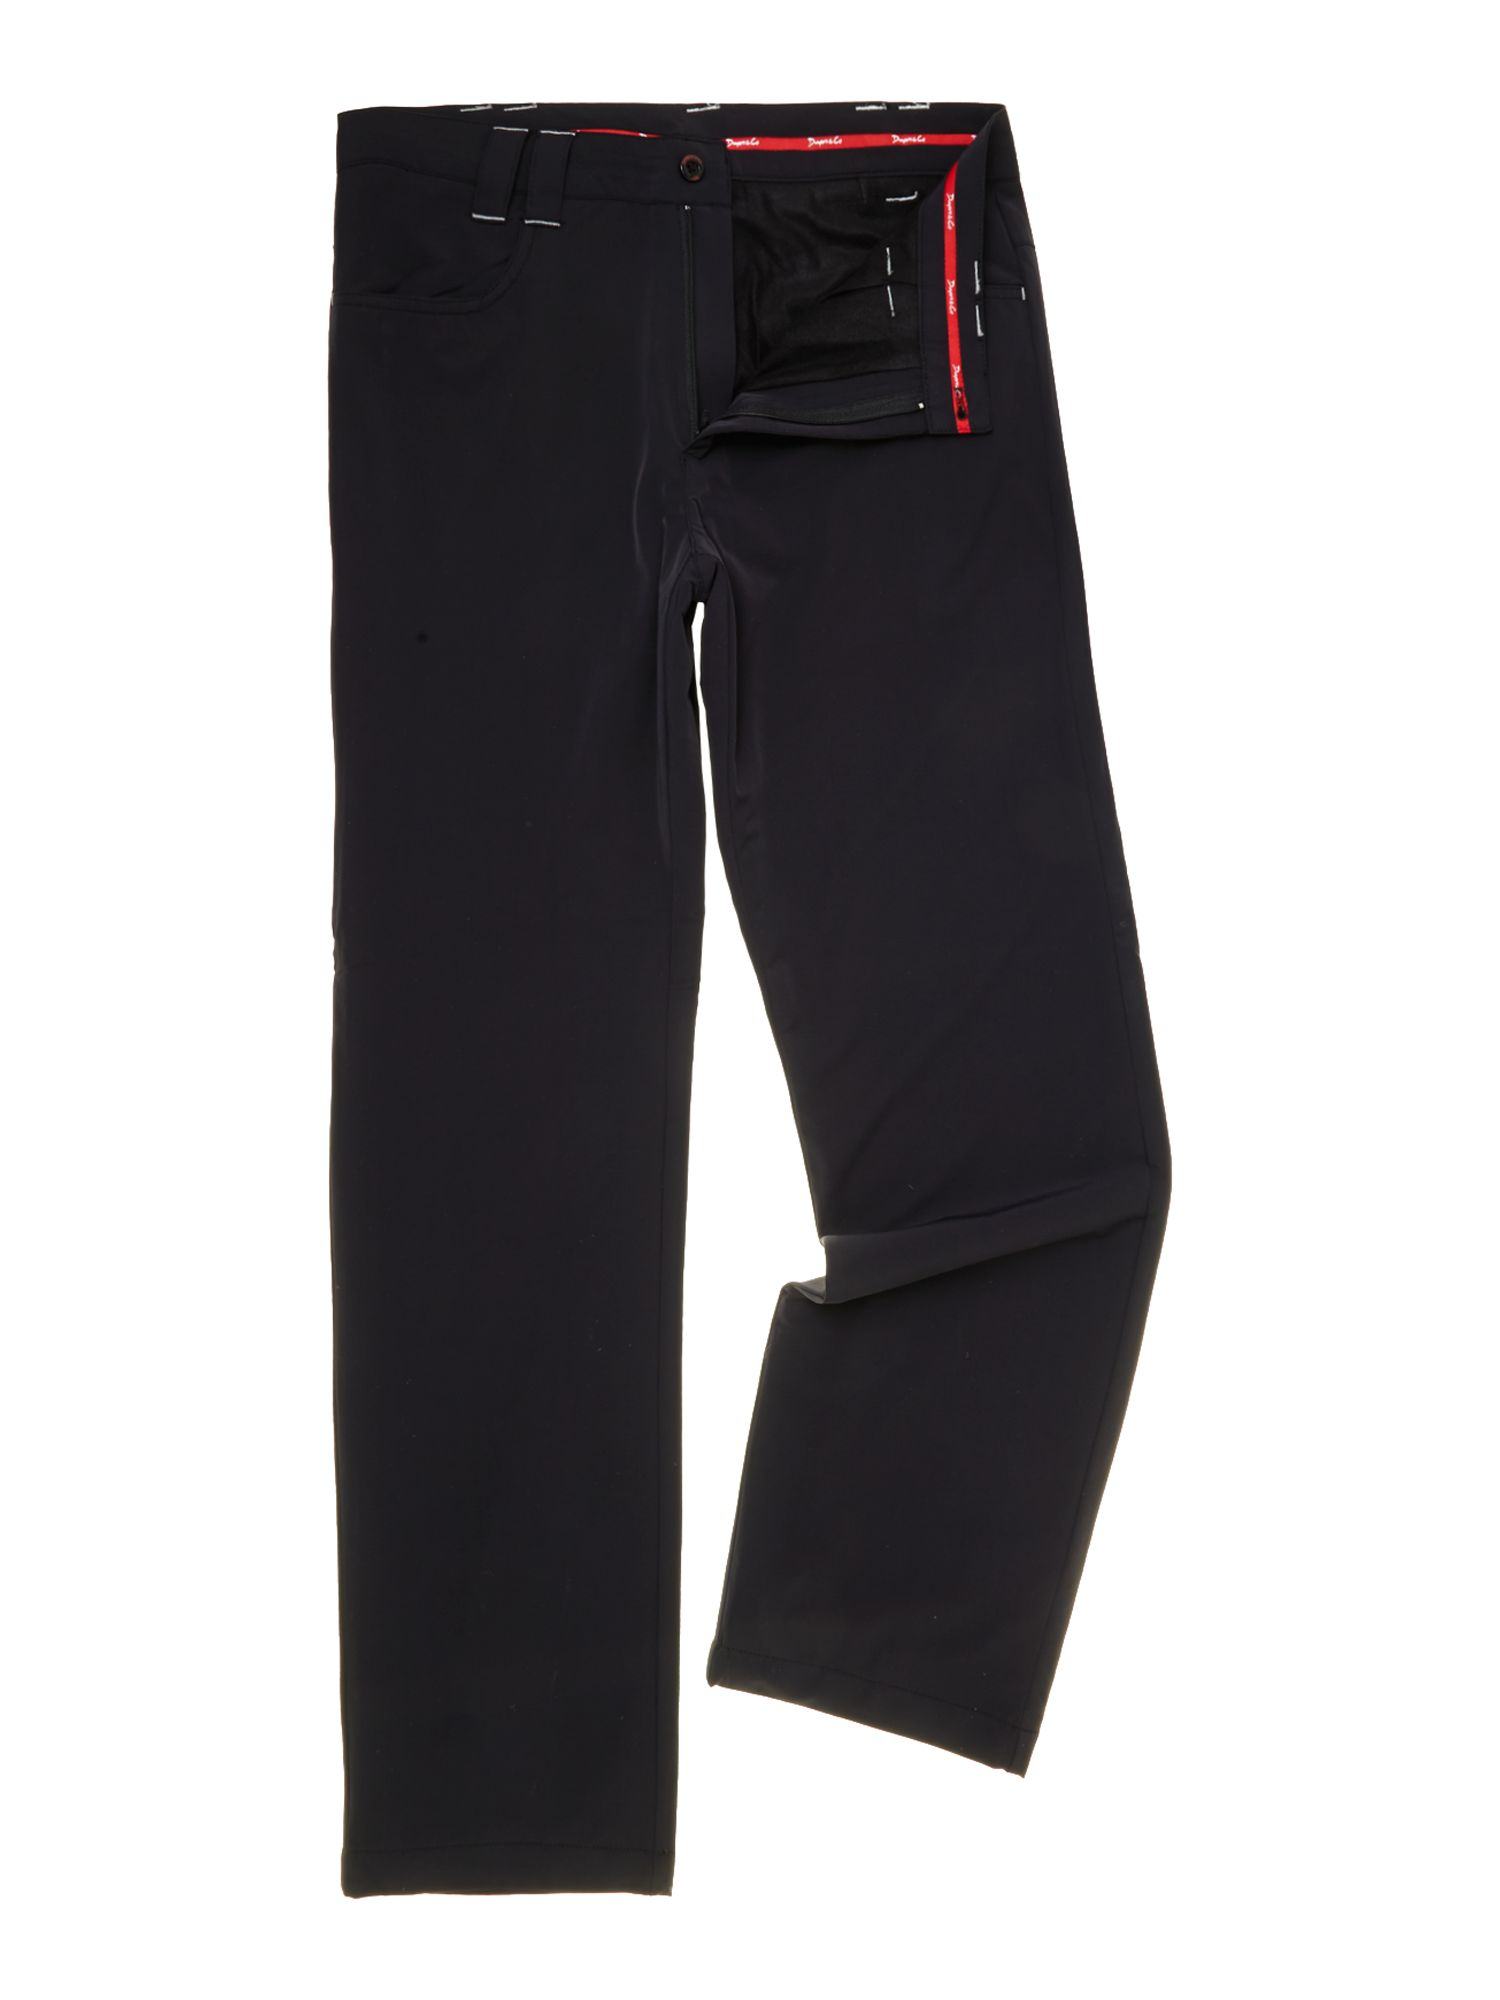 Dwyers and Co Men's Dwyers and Co Motion pro fleece lined trouser, Black